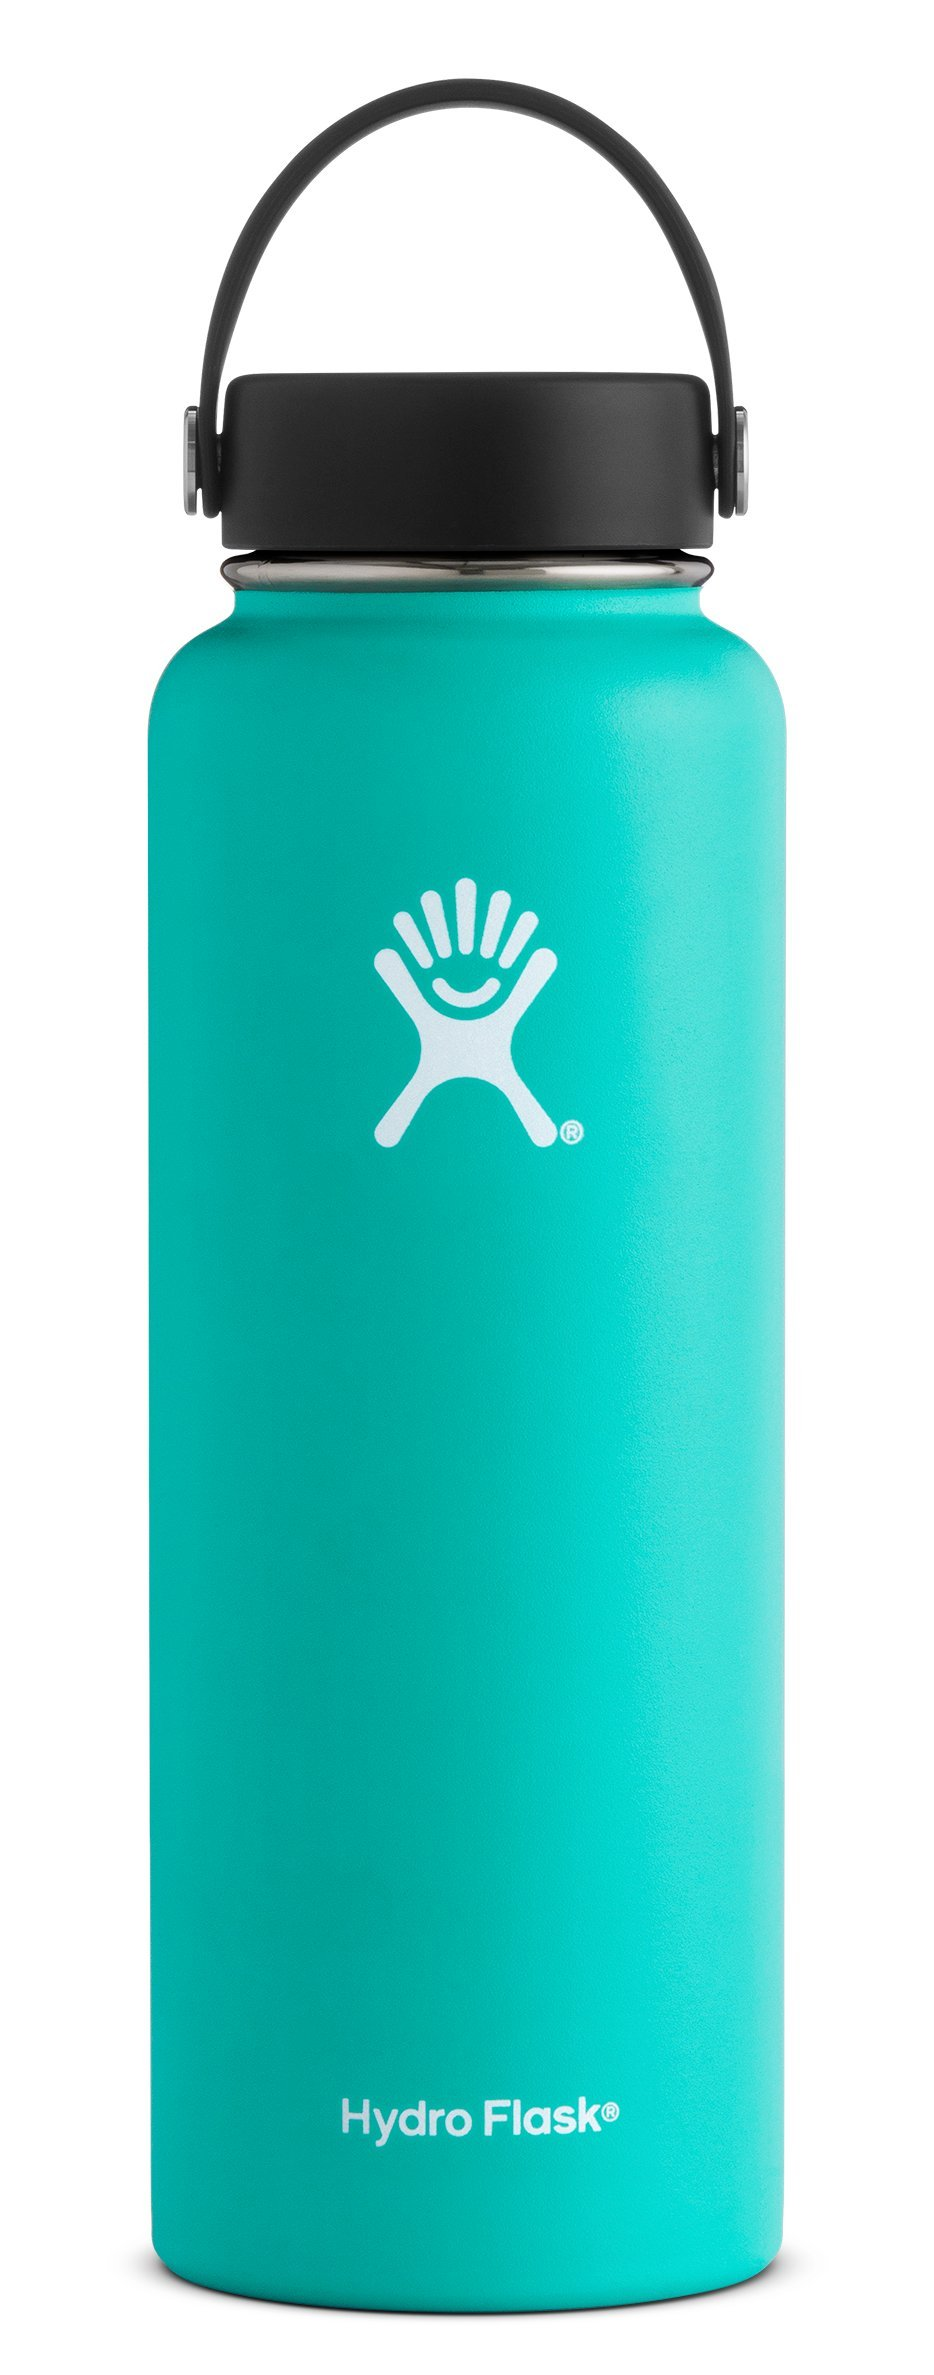 Hydro Flask 40 oz Double Wall Vacuum Insulated Stainless Steel Leak Proof Sports Water Bottle, Wide Mouth with BPA Free Flex Cap, Mint